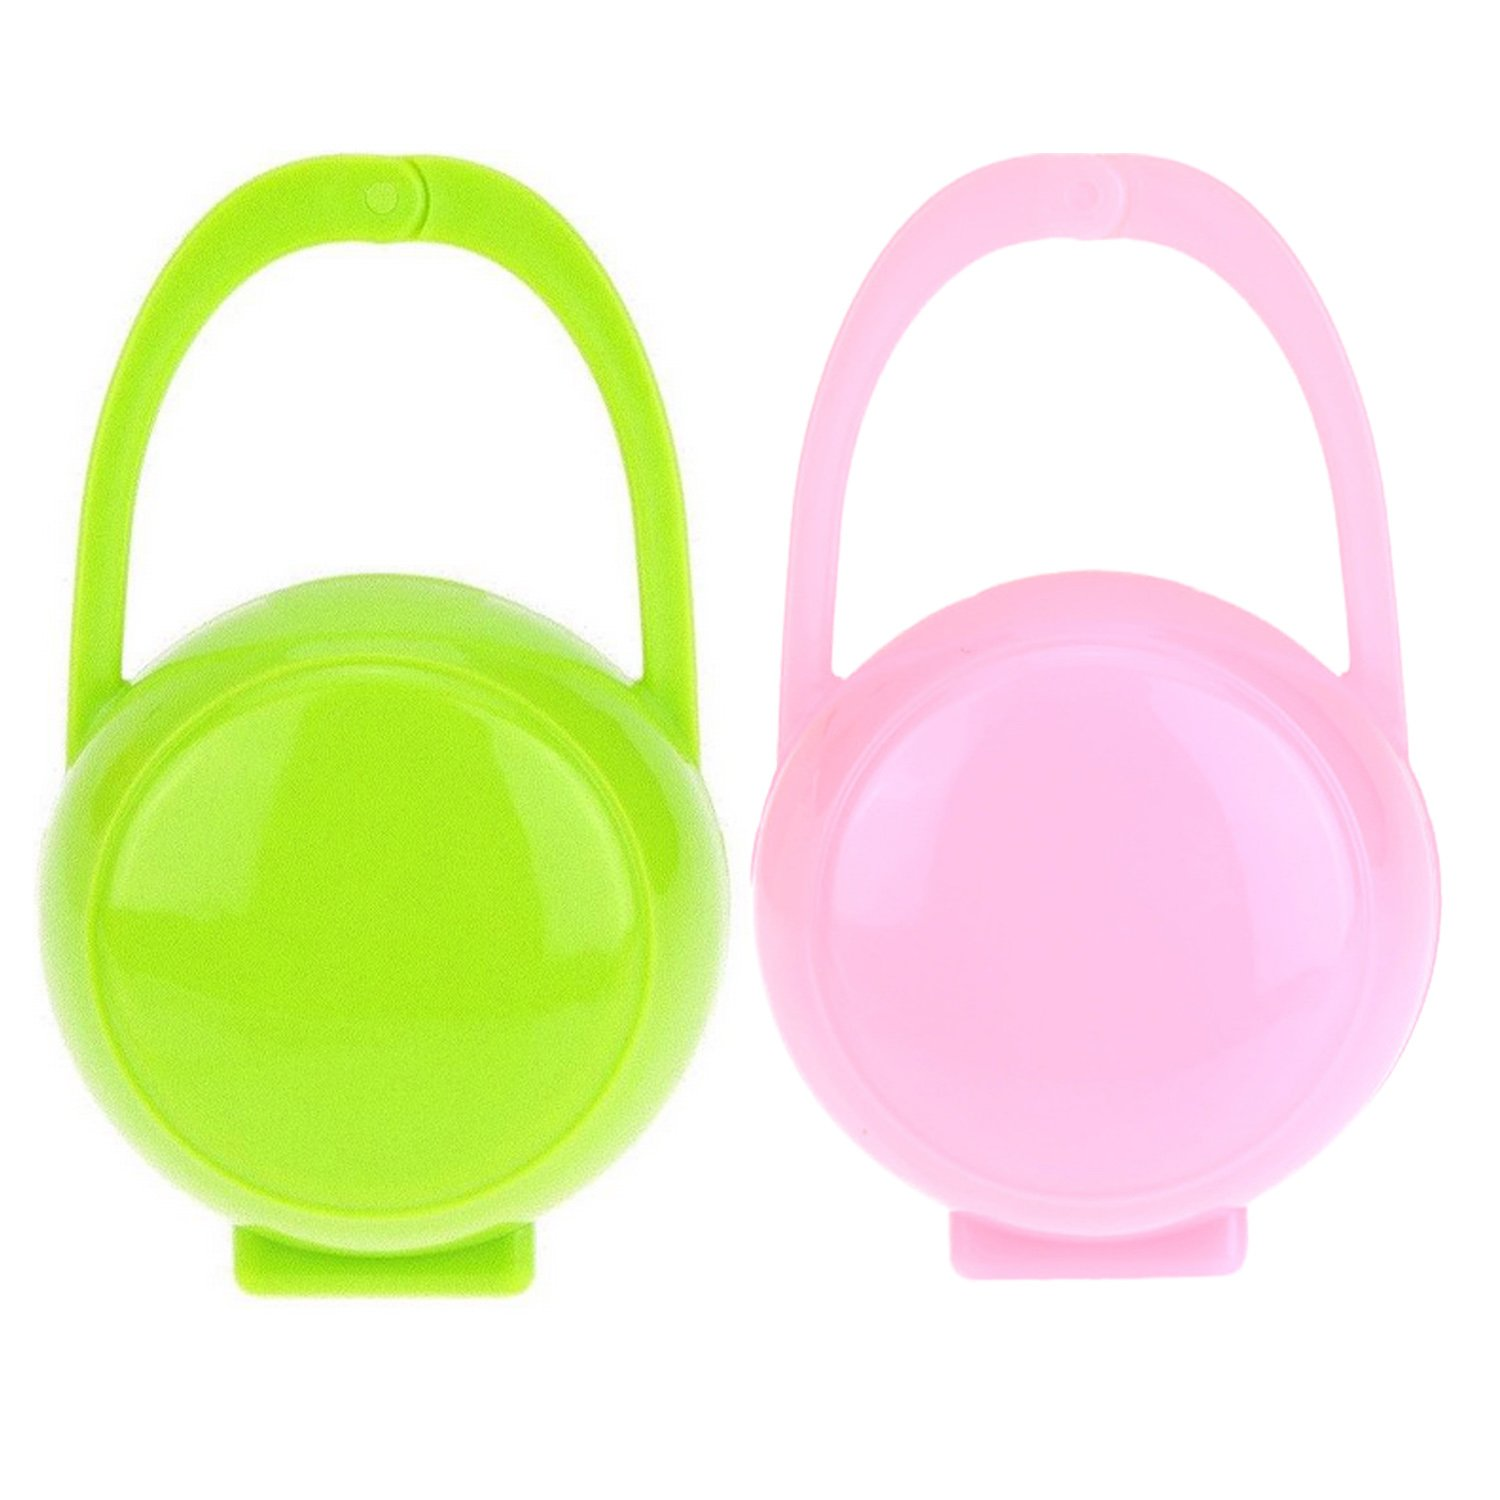 2pcs Portable Cute Infant Baby Pacifier Nipple Shield Storage Holder Case Box Container with Hang Handle for Boy Girls Green + Blue Migavan